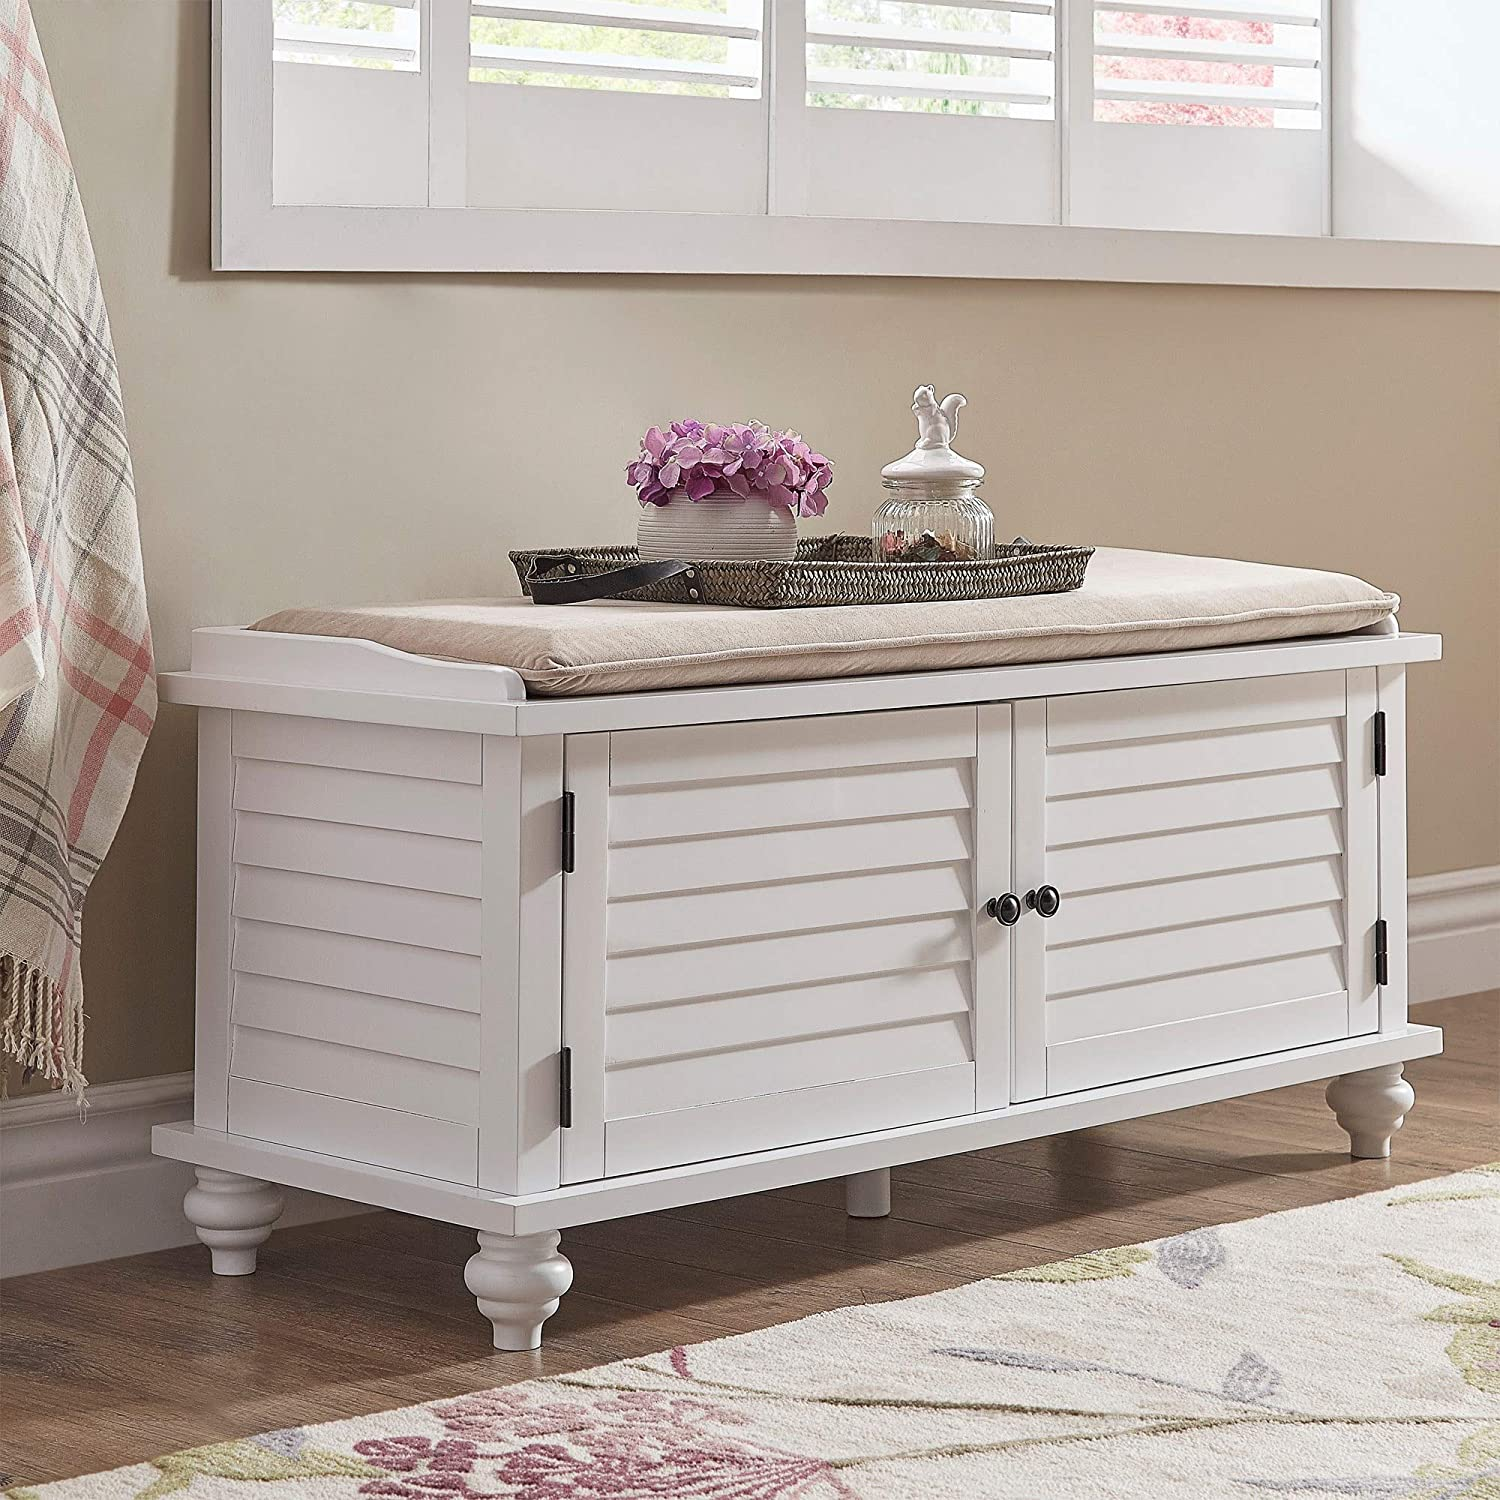 White entryway storage bench entryway furniture classic style velvet fabric foam wood mdf shutter detail cushion bundle with our expert guide with